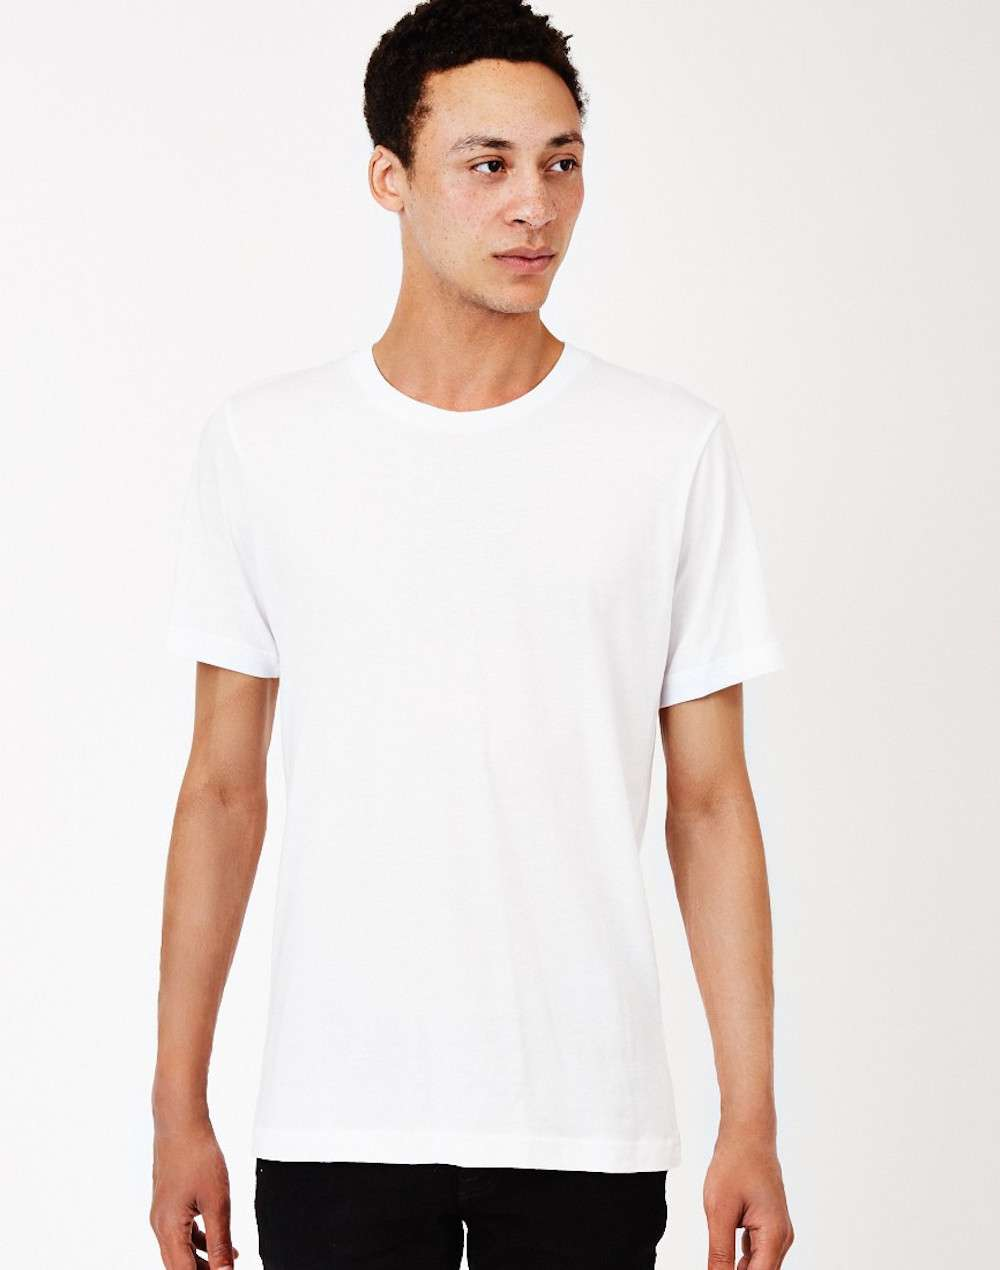 The Idle Man White T-Shirt mens